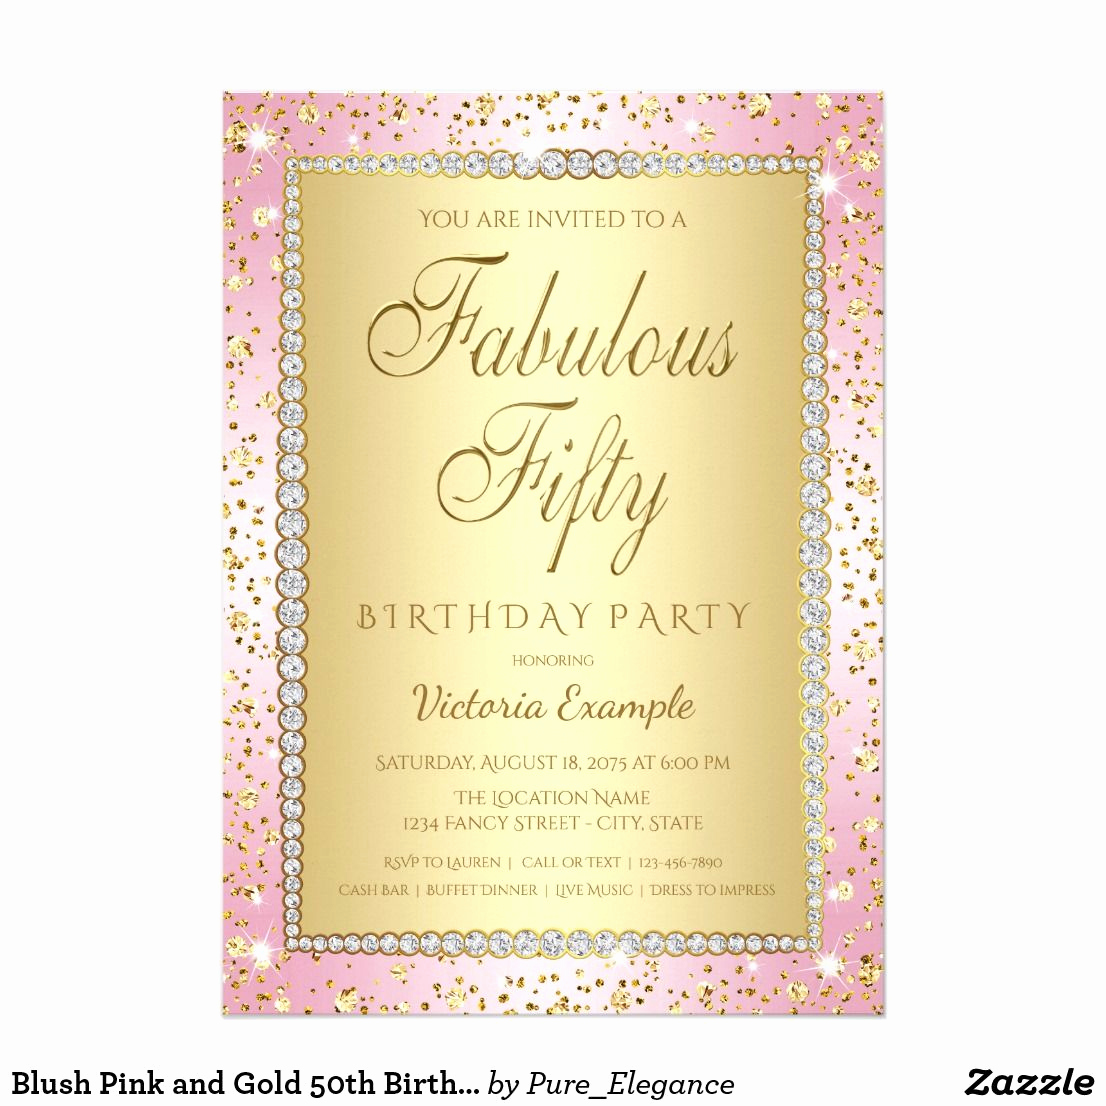 Pink and Gold Birthday Invitation Best Of Blush Pink and Gold 50th Birthday Party Invitation